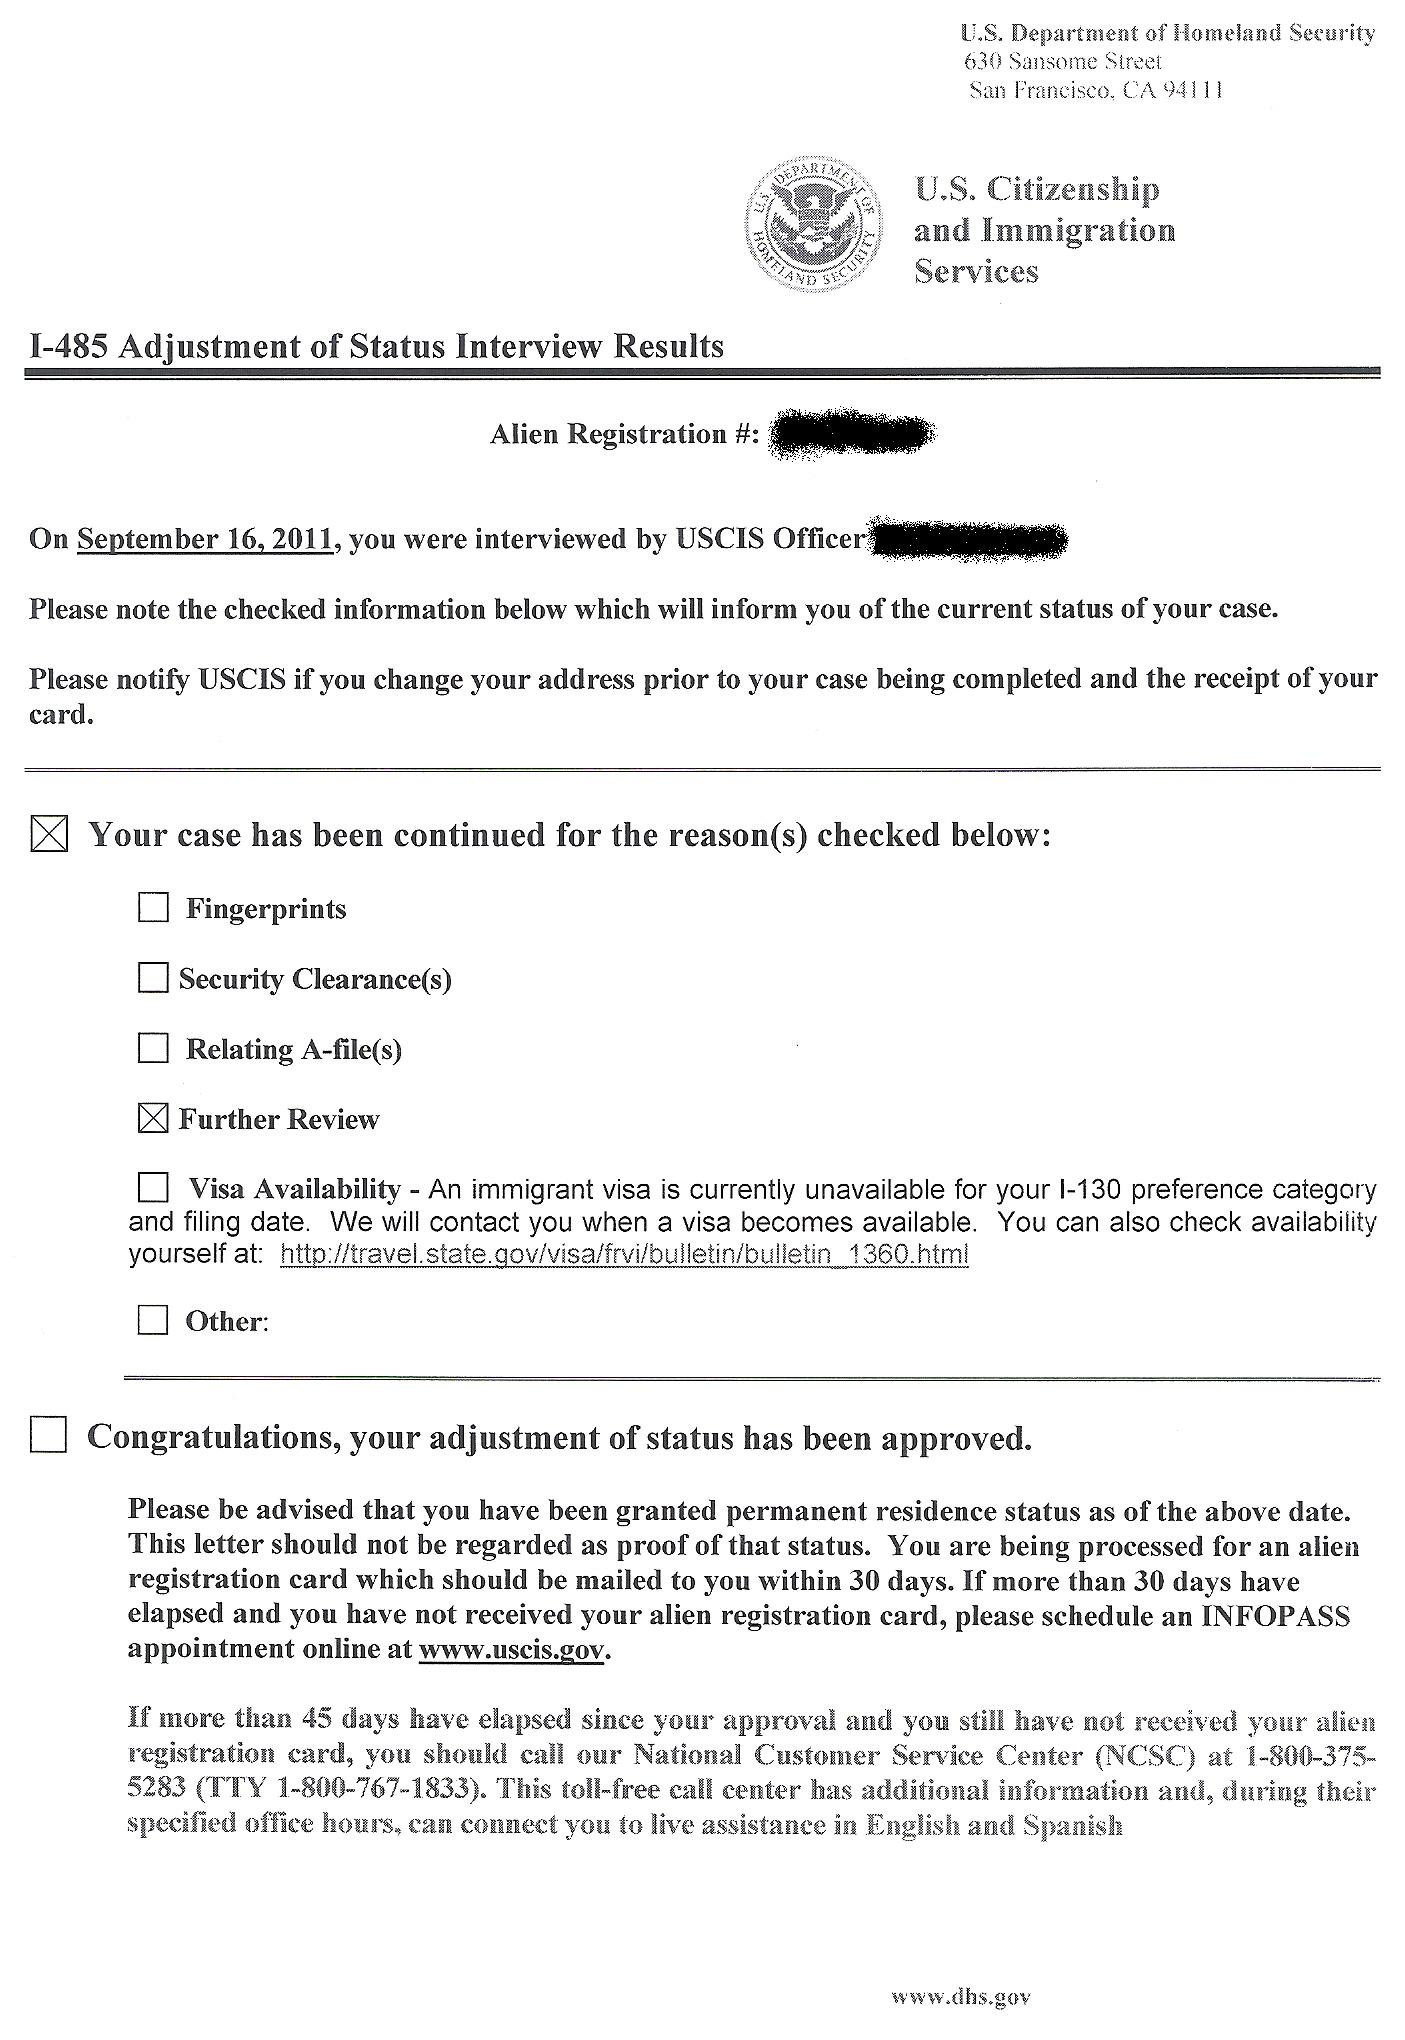 Did we pass our interview?? - Adjustment of Status (Green Card) from